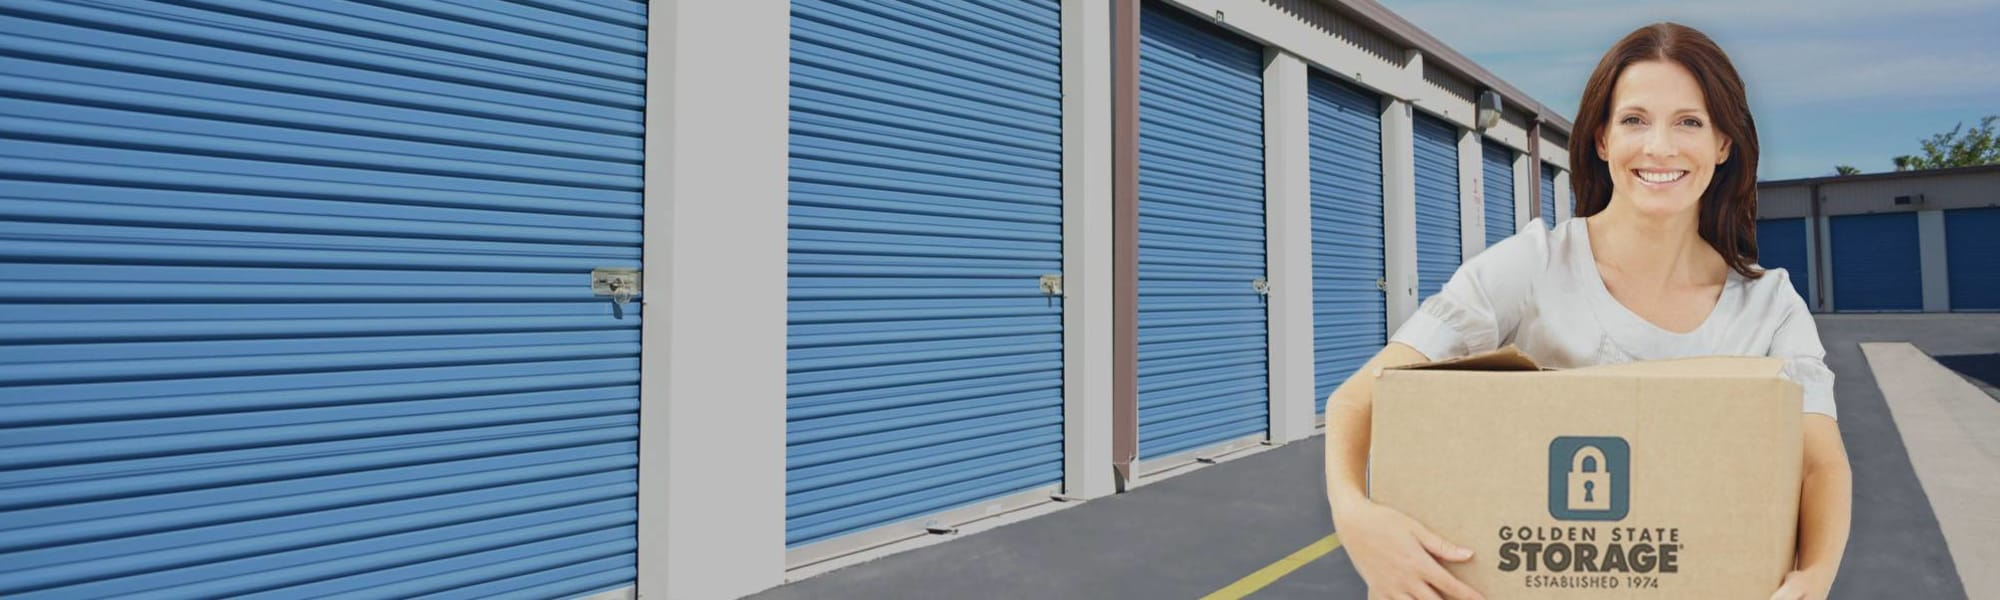 Reviews of Golden State Storage - Carriage Square in Oxnard, California